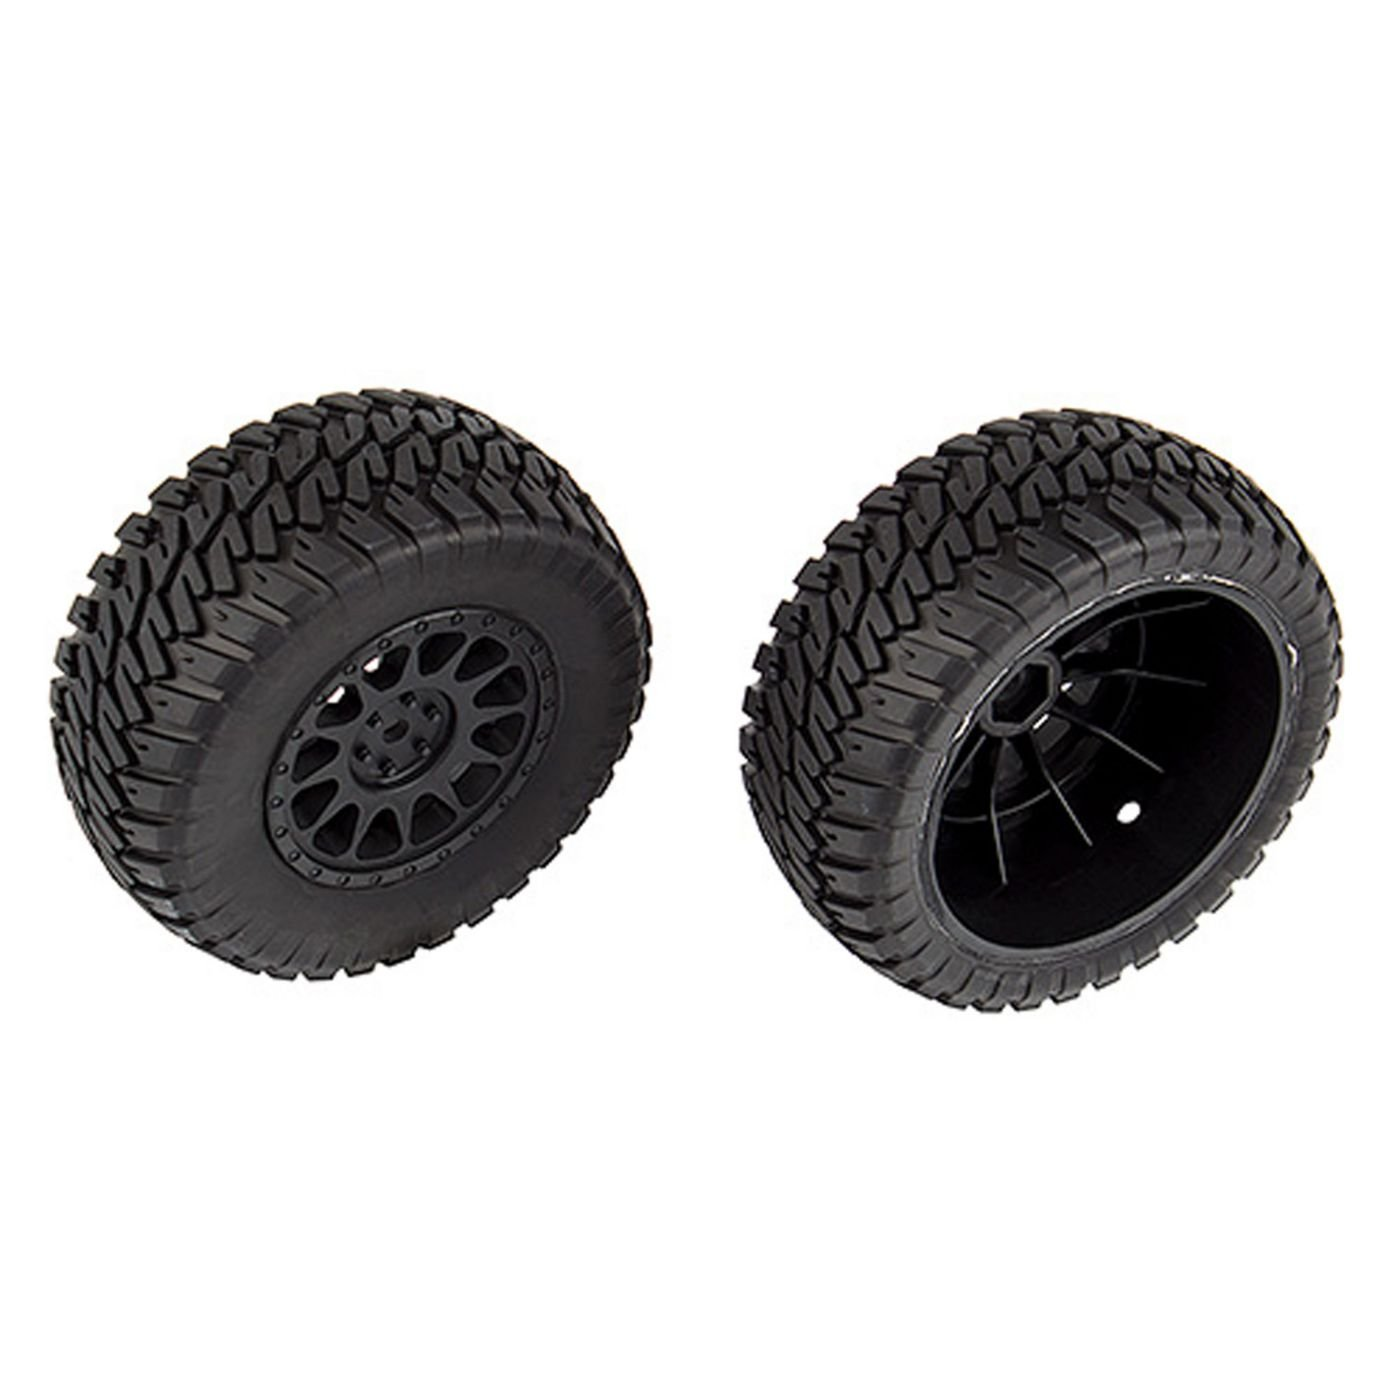 Team Associated Multi-terrain Tires and Method Wheels mounted by Team Associated (Image #1)